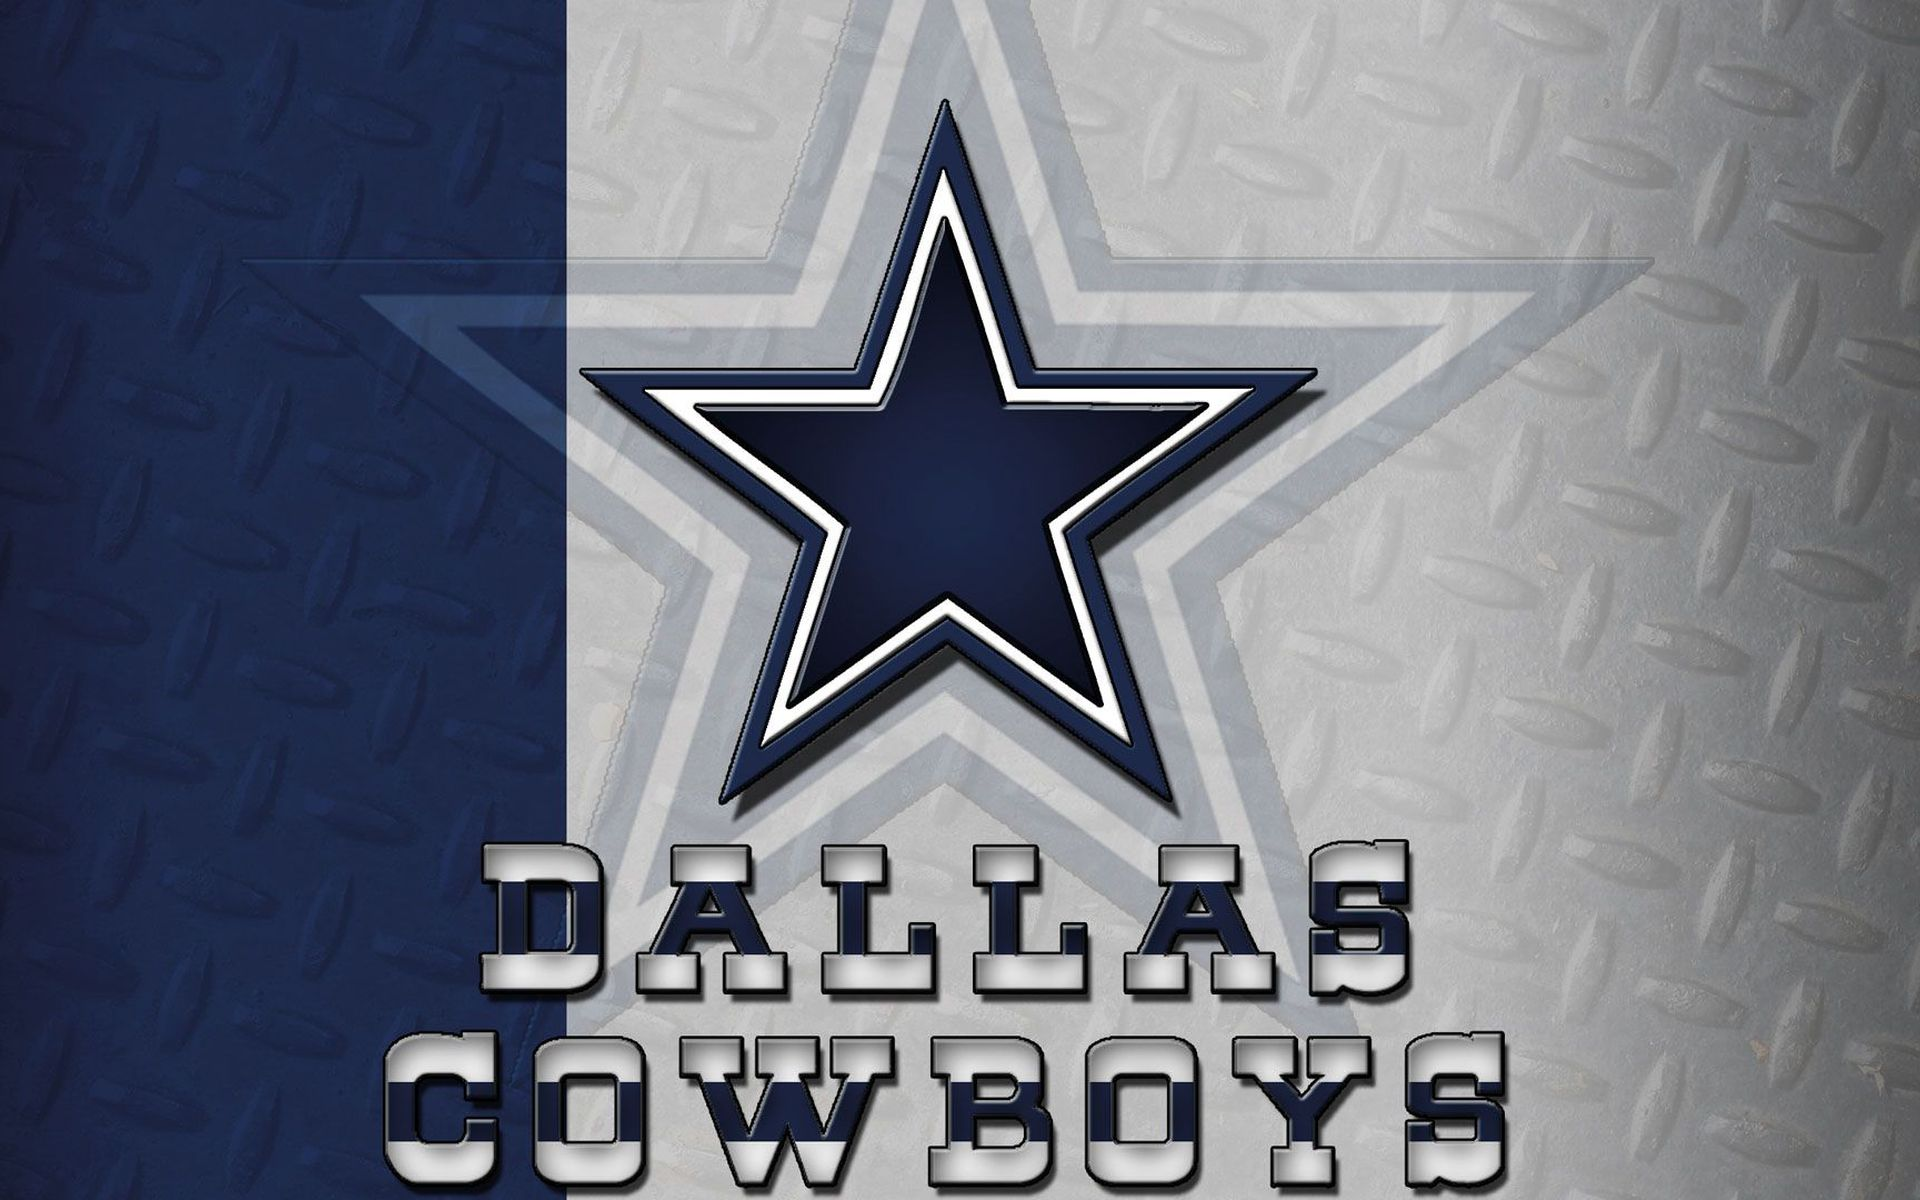 Dallas Cowboys Full HD Background Picture Image 1920x1200